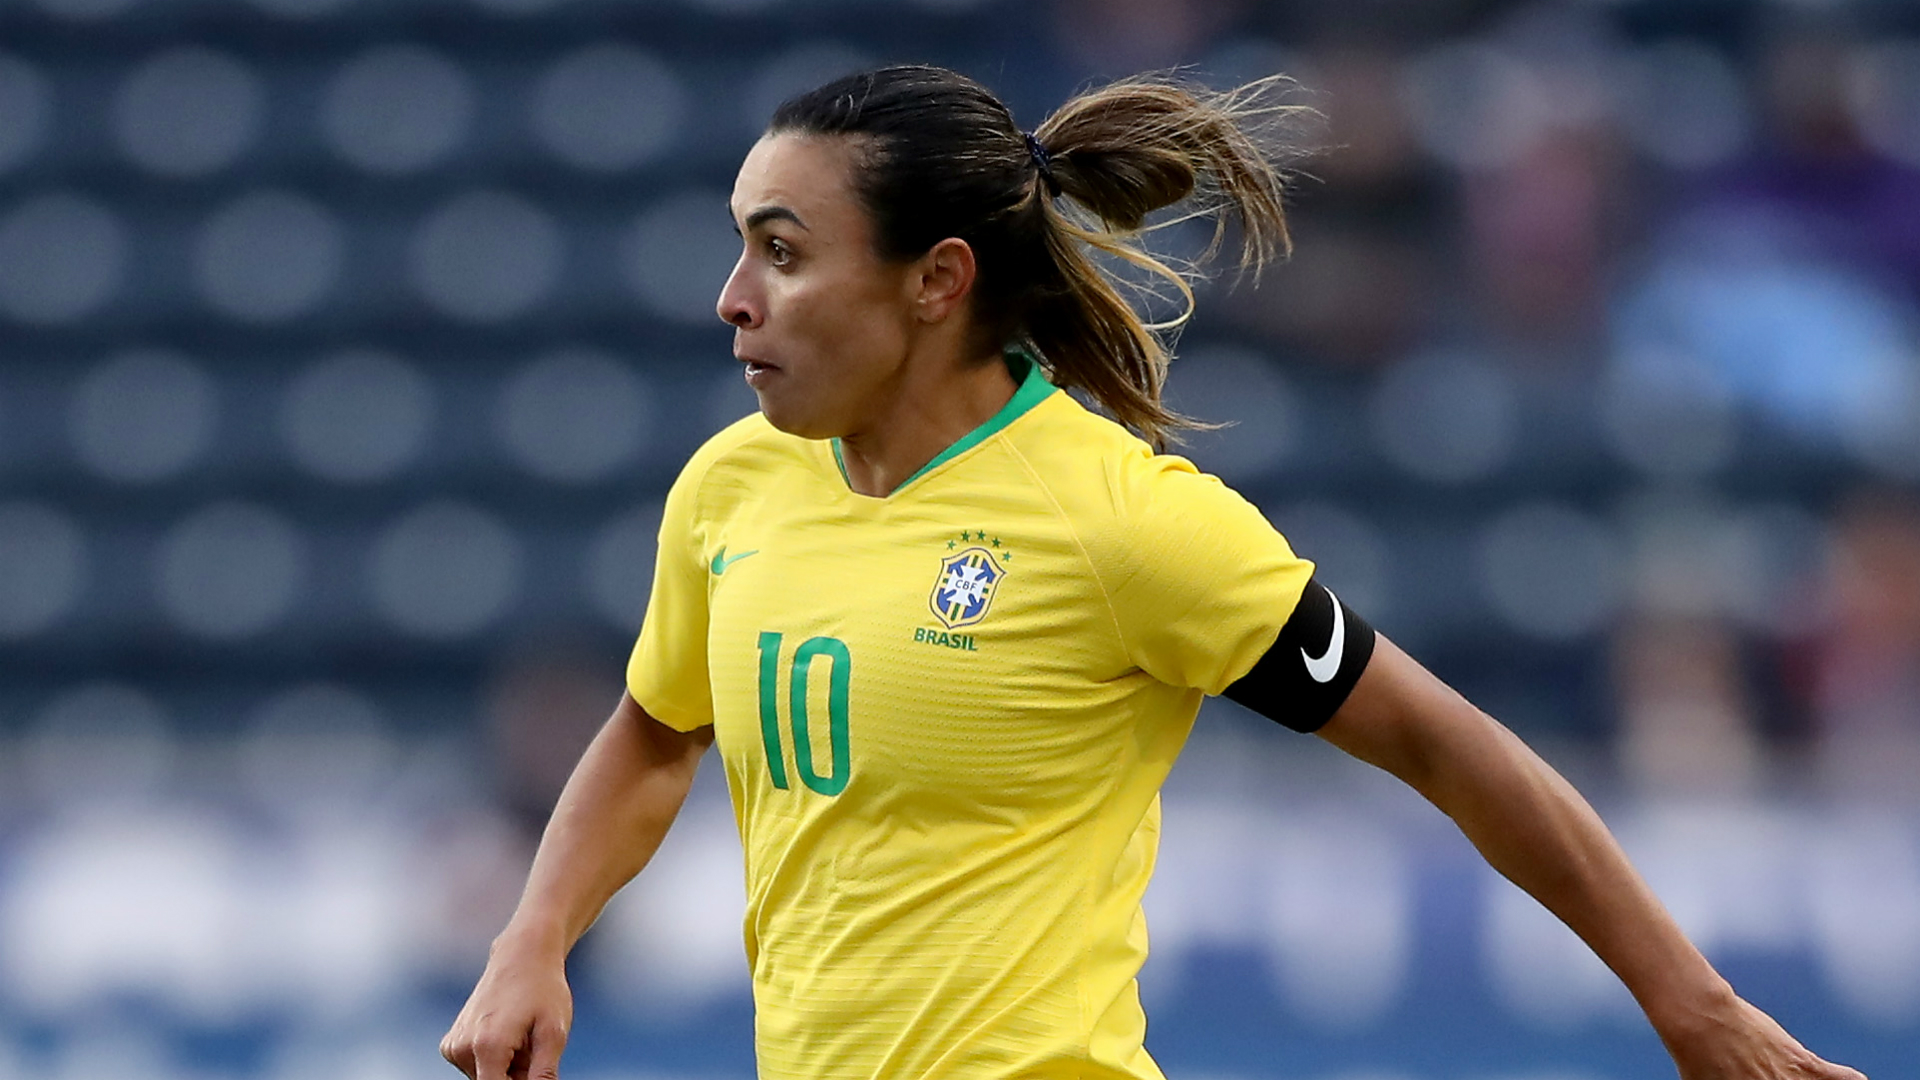 Marta expected to miss Brazil's opening Women's World Cup game